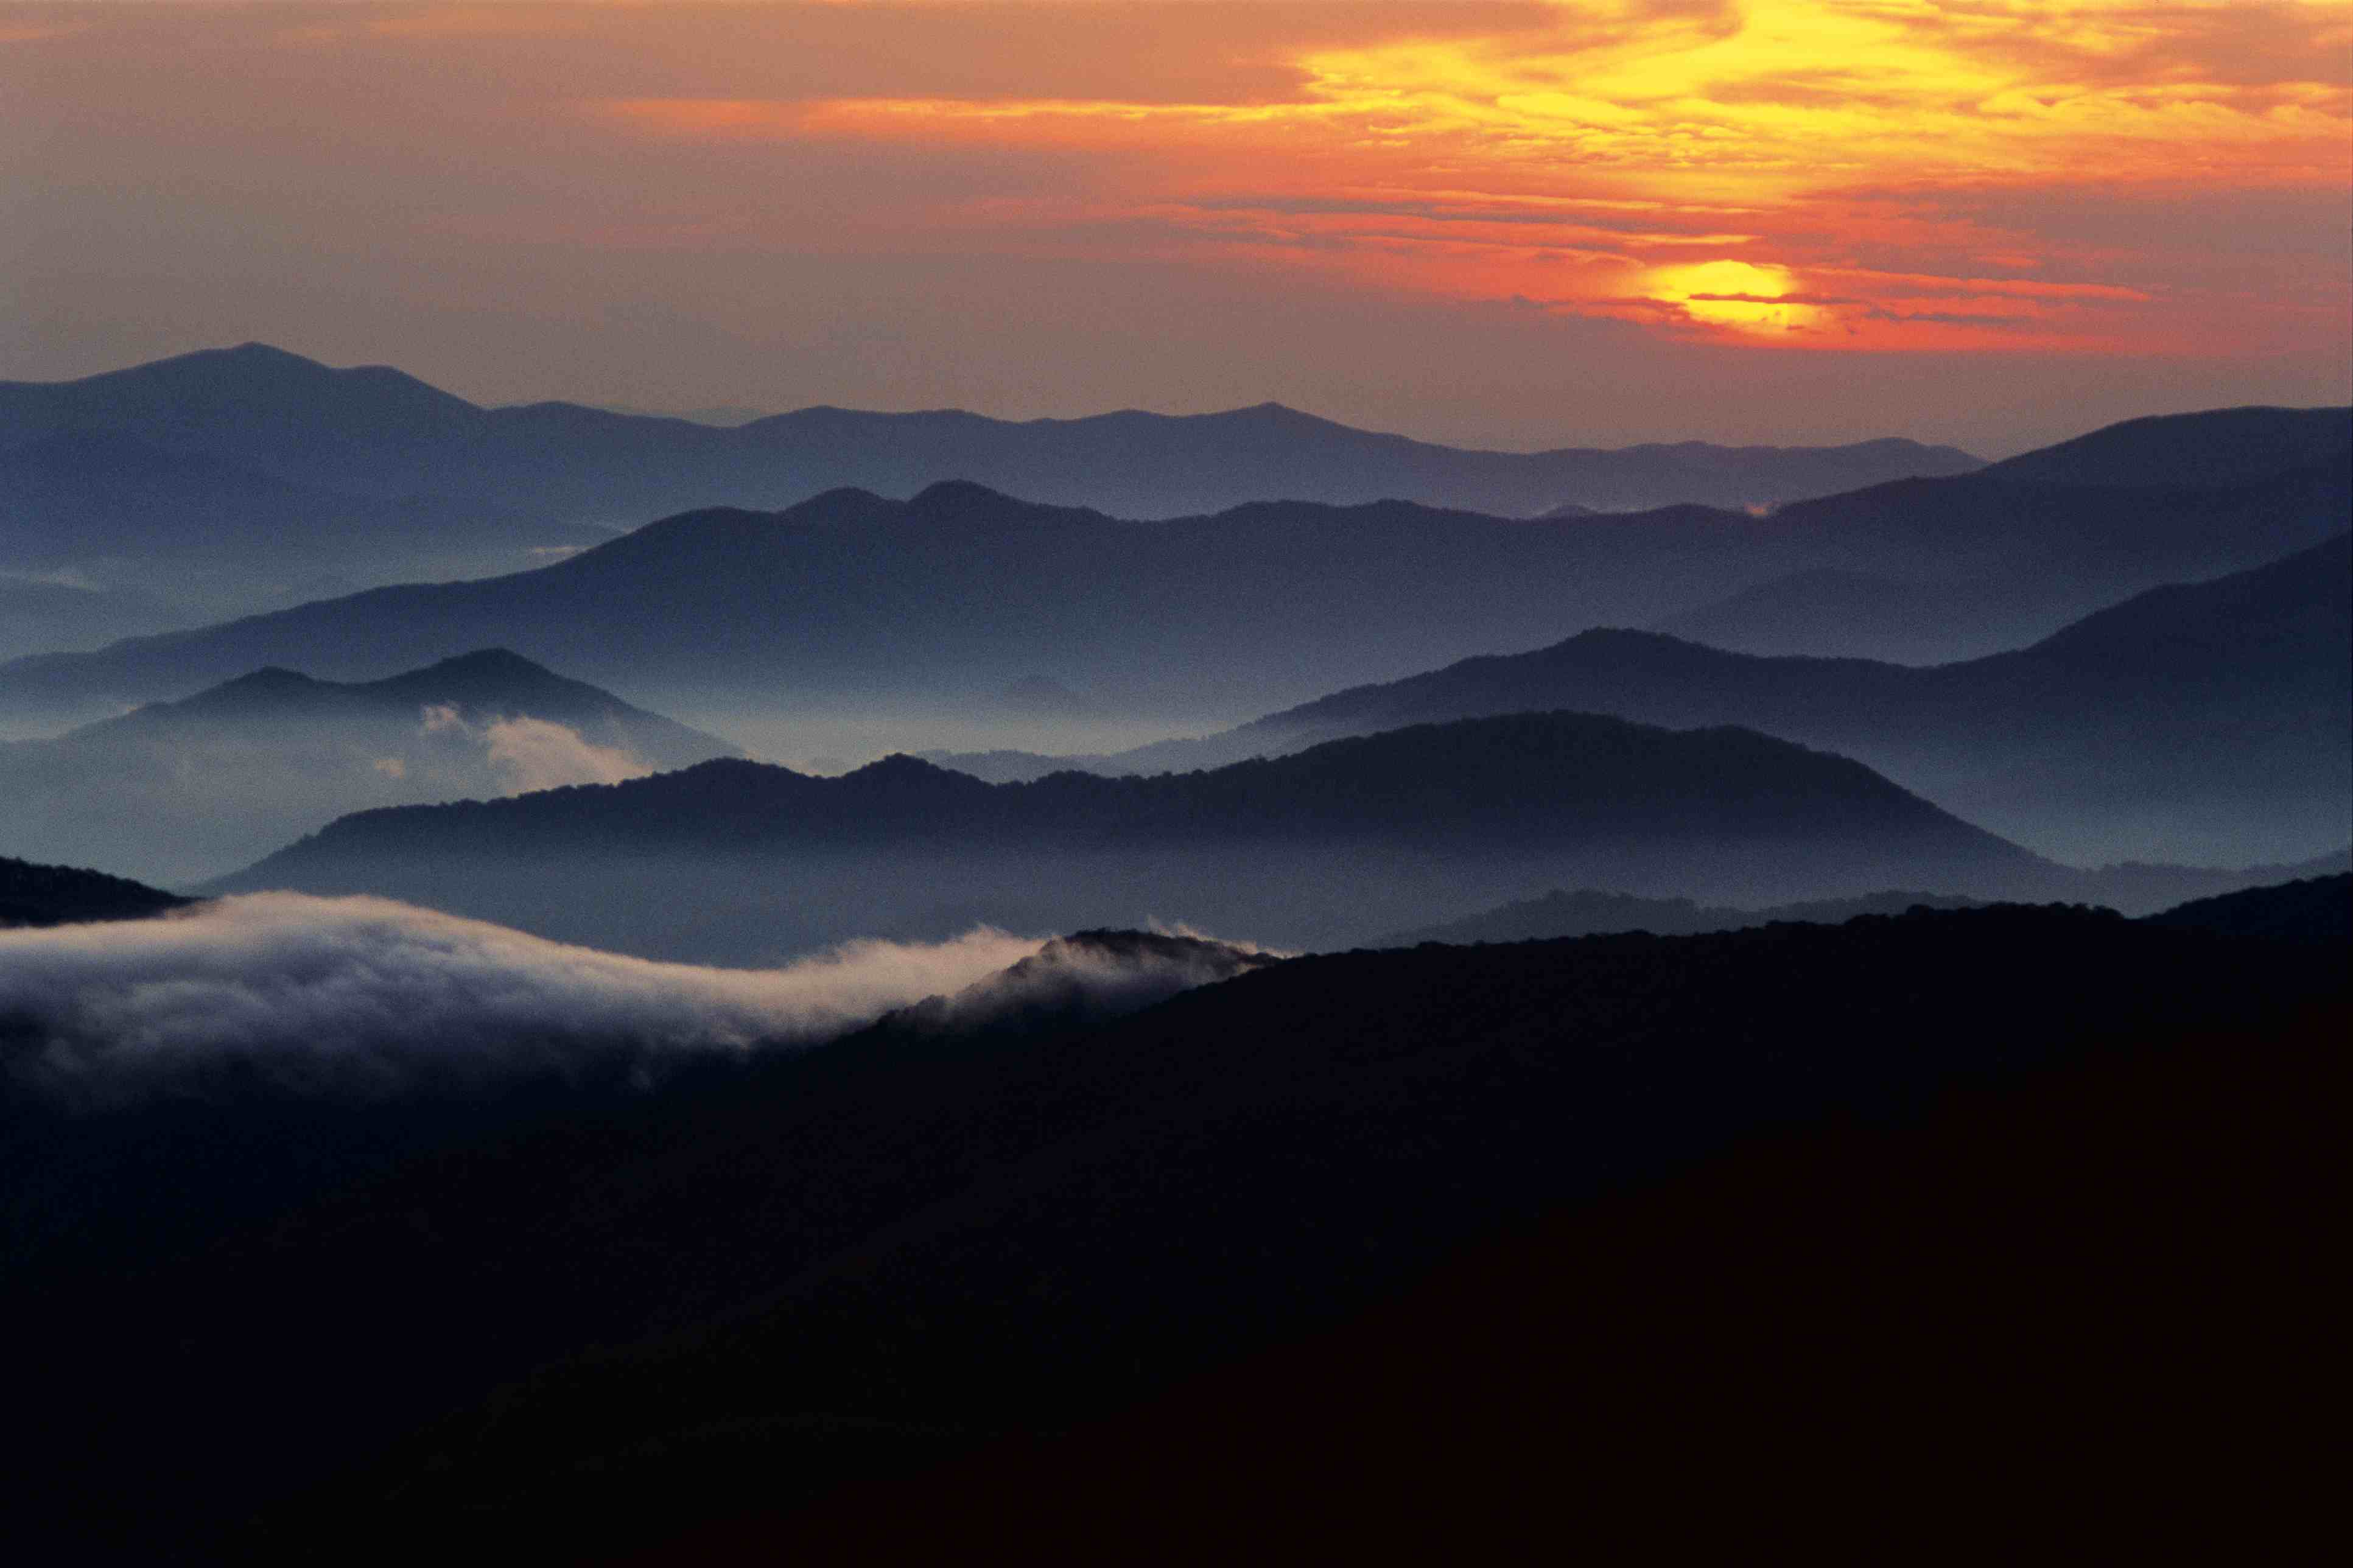 Sunset from Clingman's Dome, Great Smoky Mountains National Park, North Carolina, Tennessee, USA